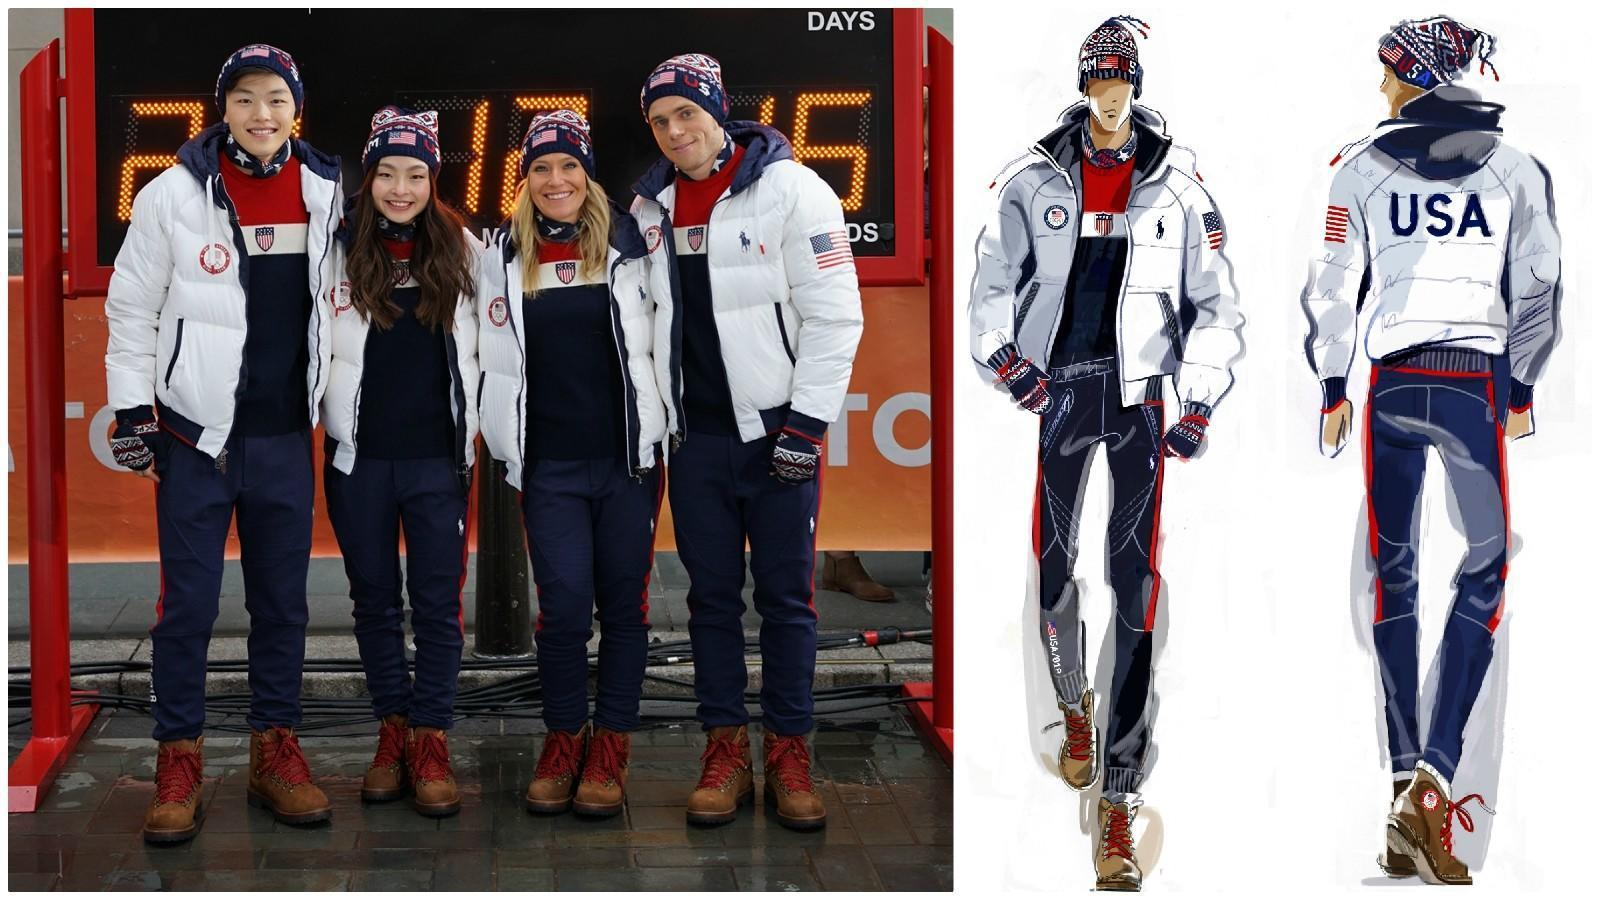 Ralph Lauren unveils retro-inspired closing ceremony uniforms for the 2018 Winter Olympic Games ...